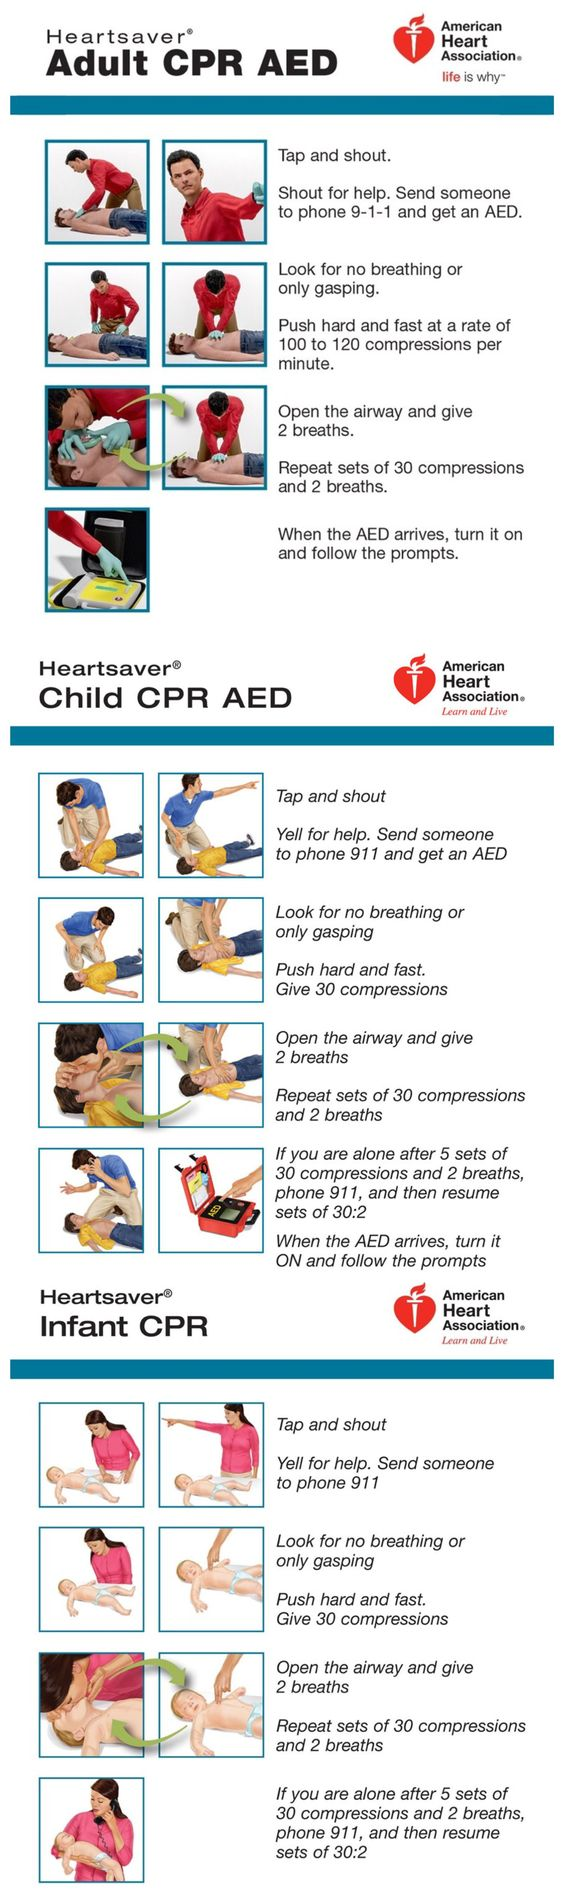 Best 25 cpr training ideas on pinterest cardiopulmonary best 25 cpr training ideas on pinterest cardiopulmonary resuscitation cpr video and baby safety xflitez Image collections